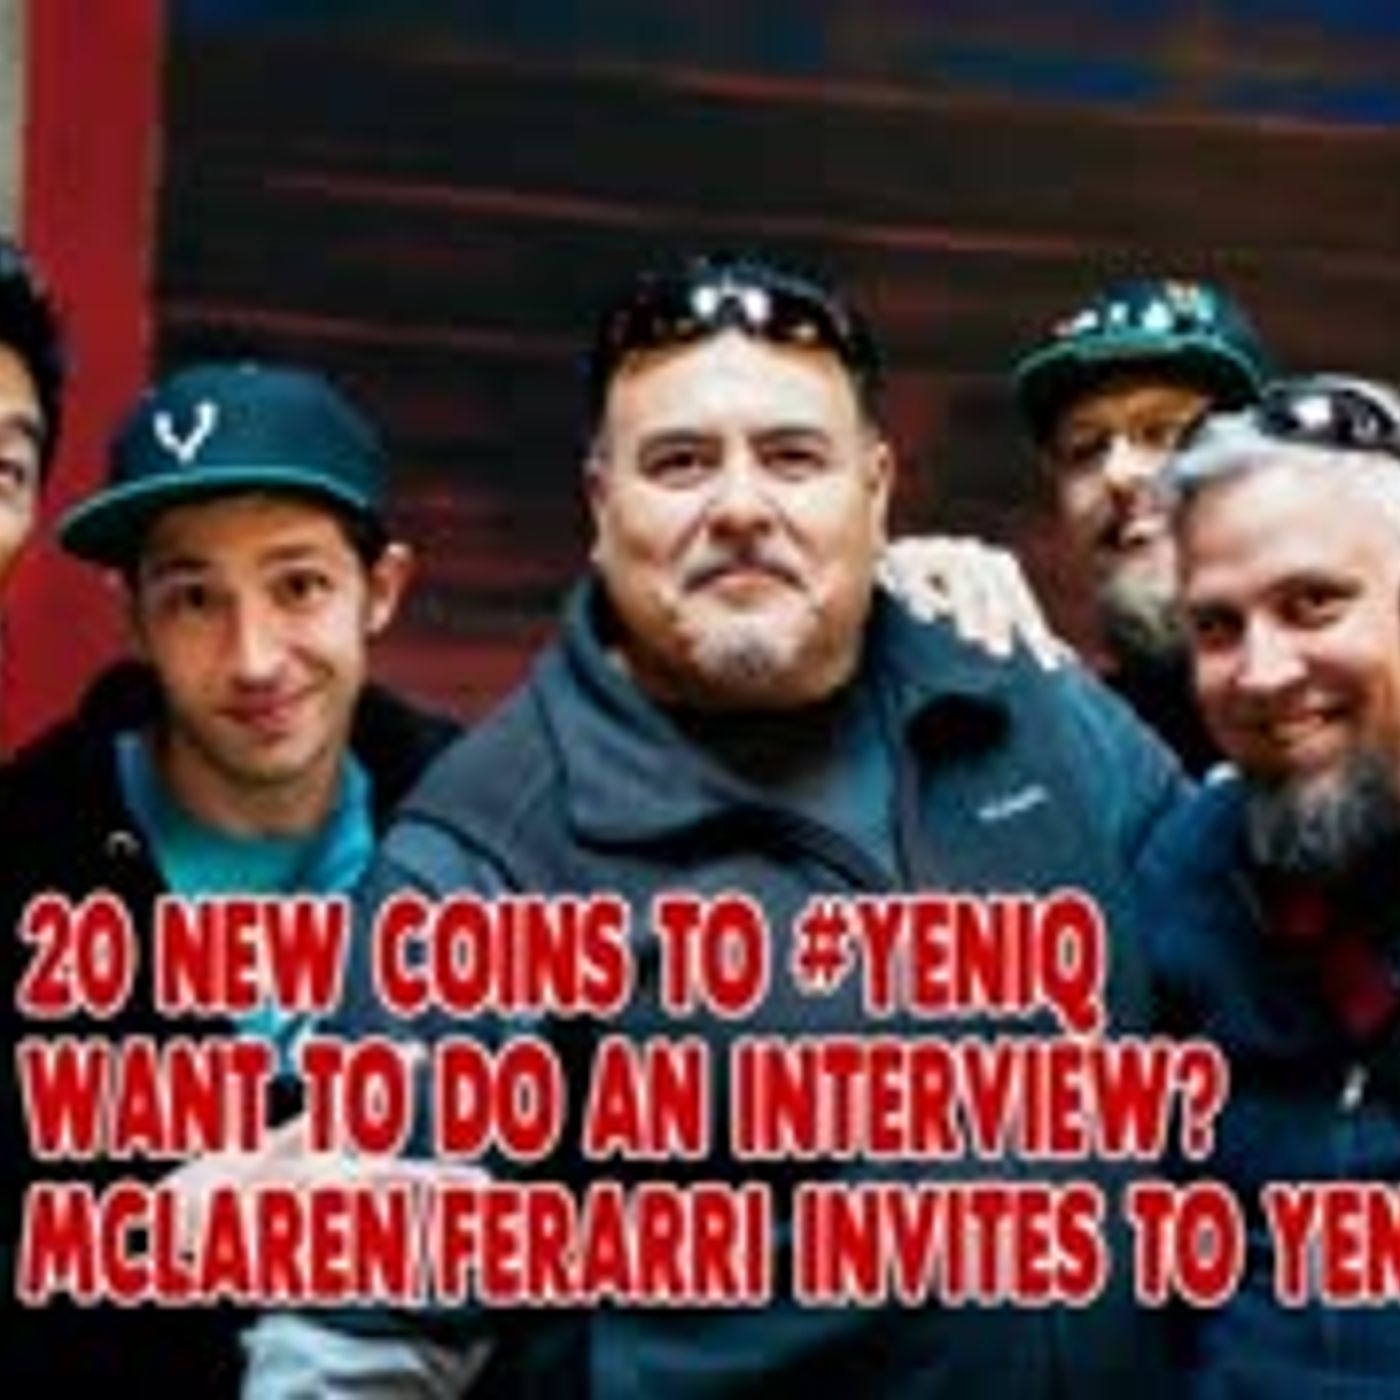 Invites to YEN.io for Mclaren Ferarri! 20 NEW COINS! Want to Interview Crypto Projects